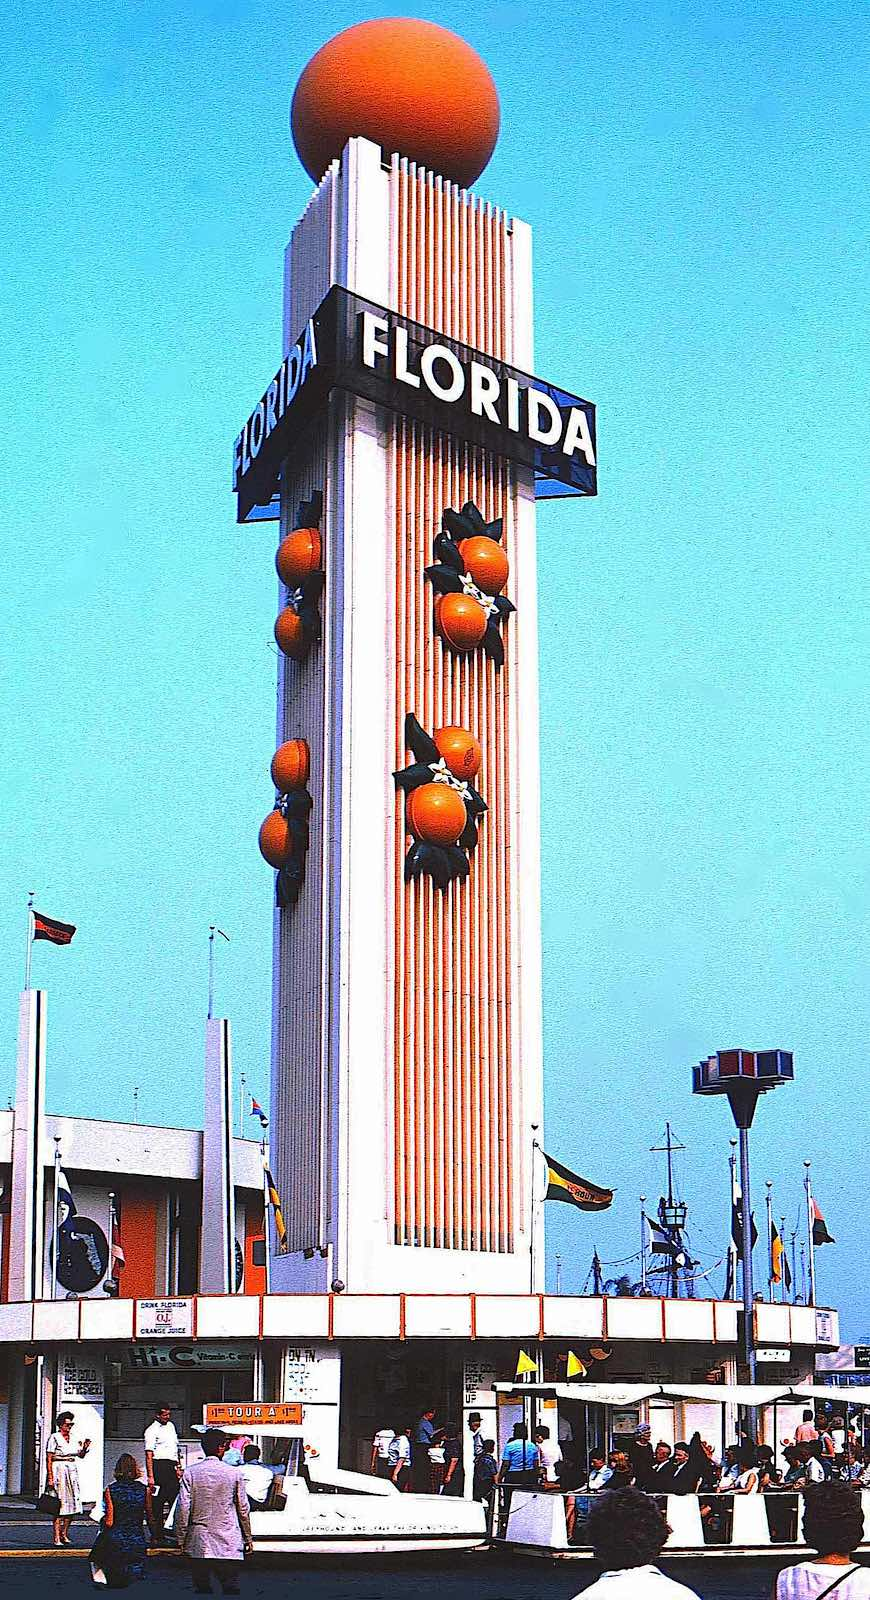 the Florida pavilion at the 1964 New York World's Fair, a color photograph